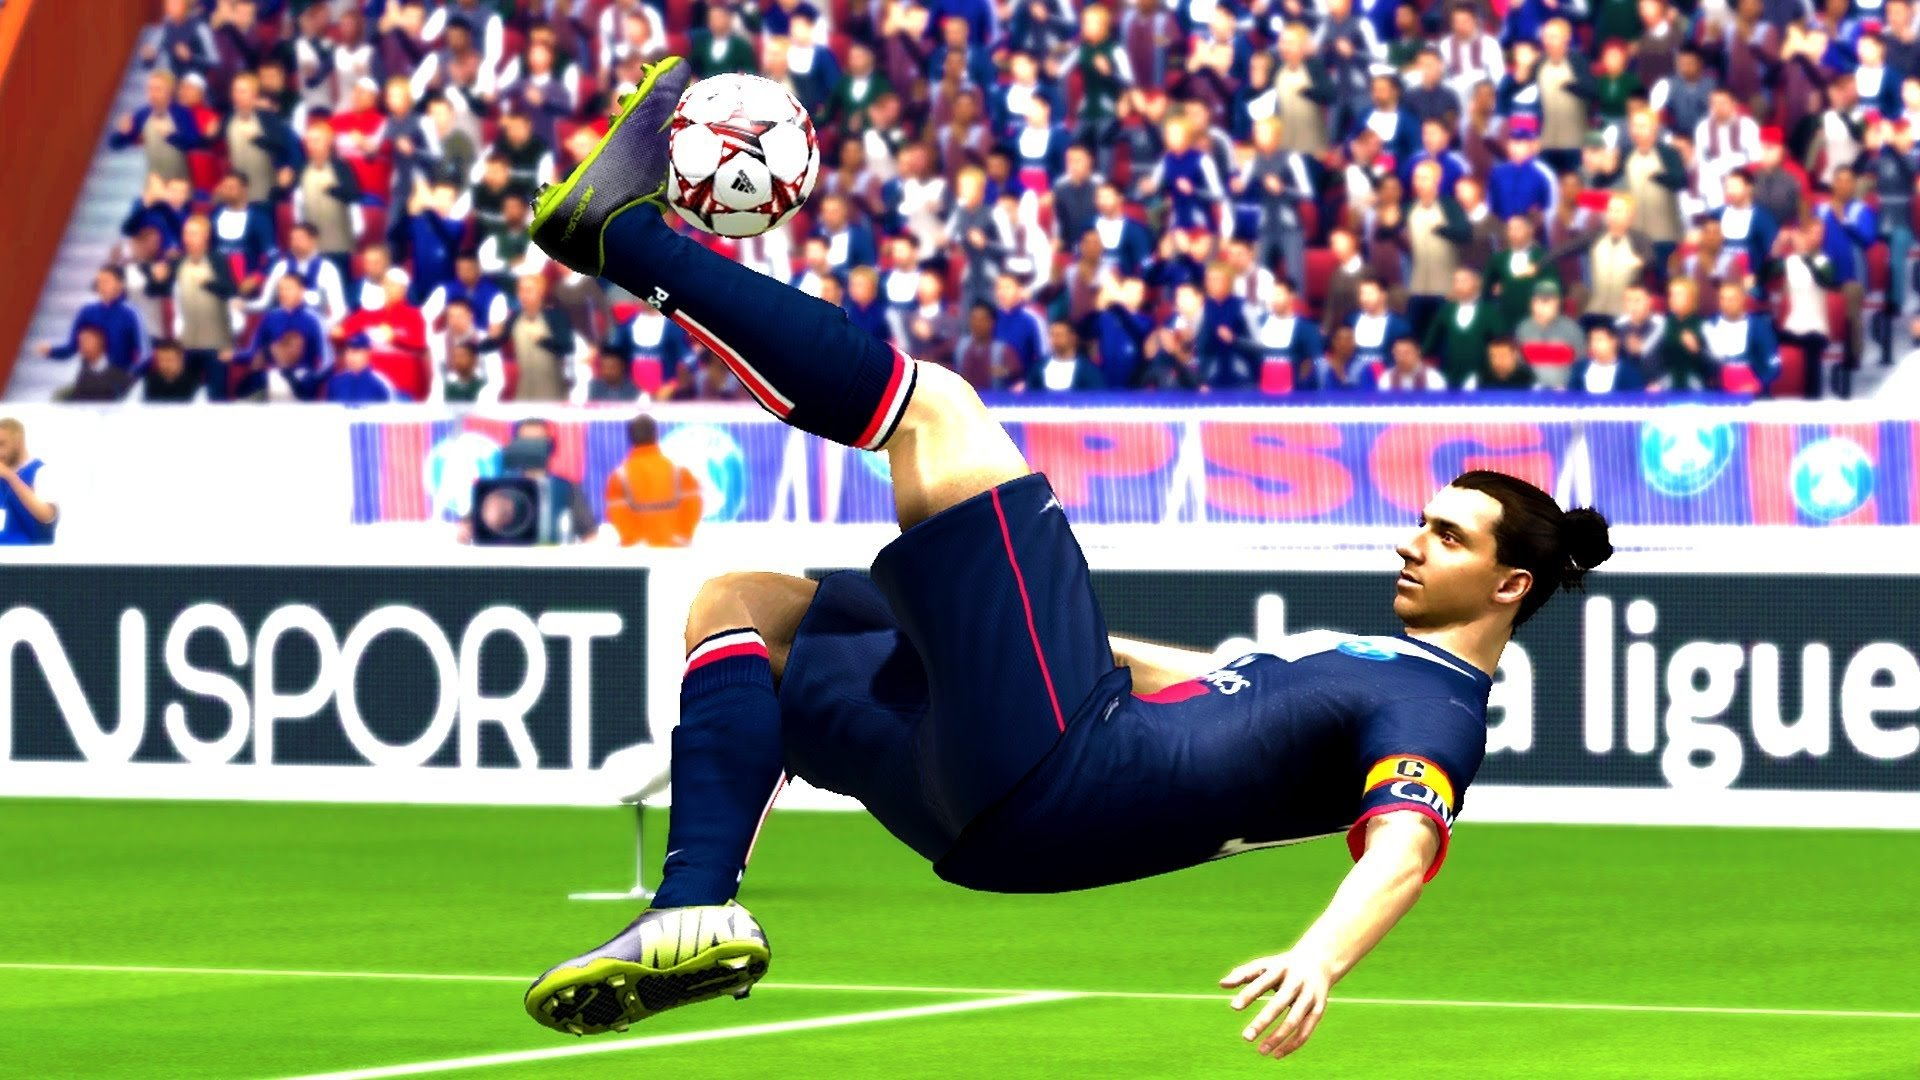 14 fifa 14 hd wallpapers background images wallpaper abyss hd wallpaper background image id507709 voltagebd Image collections